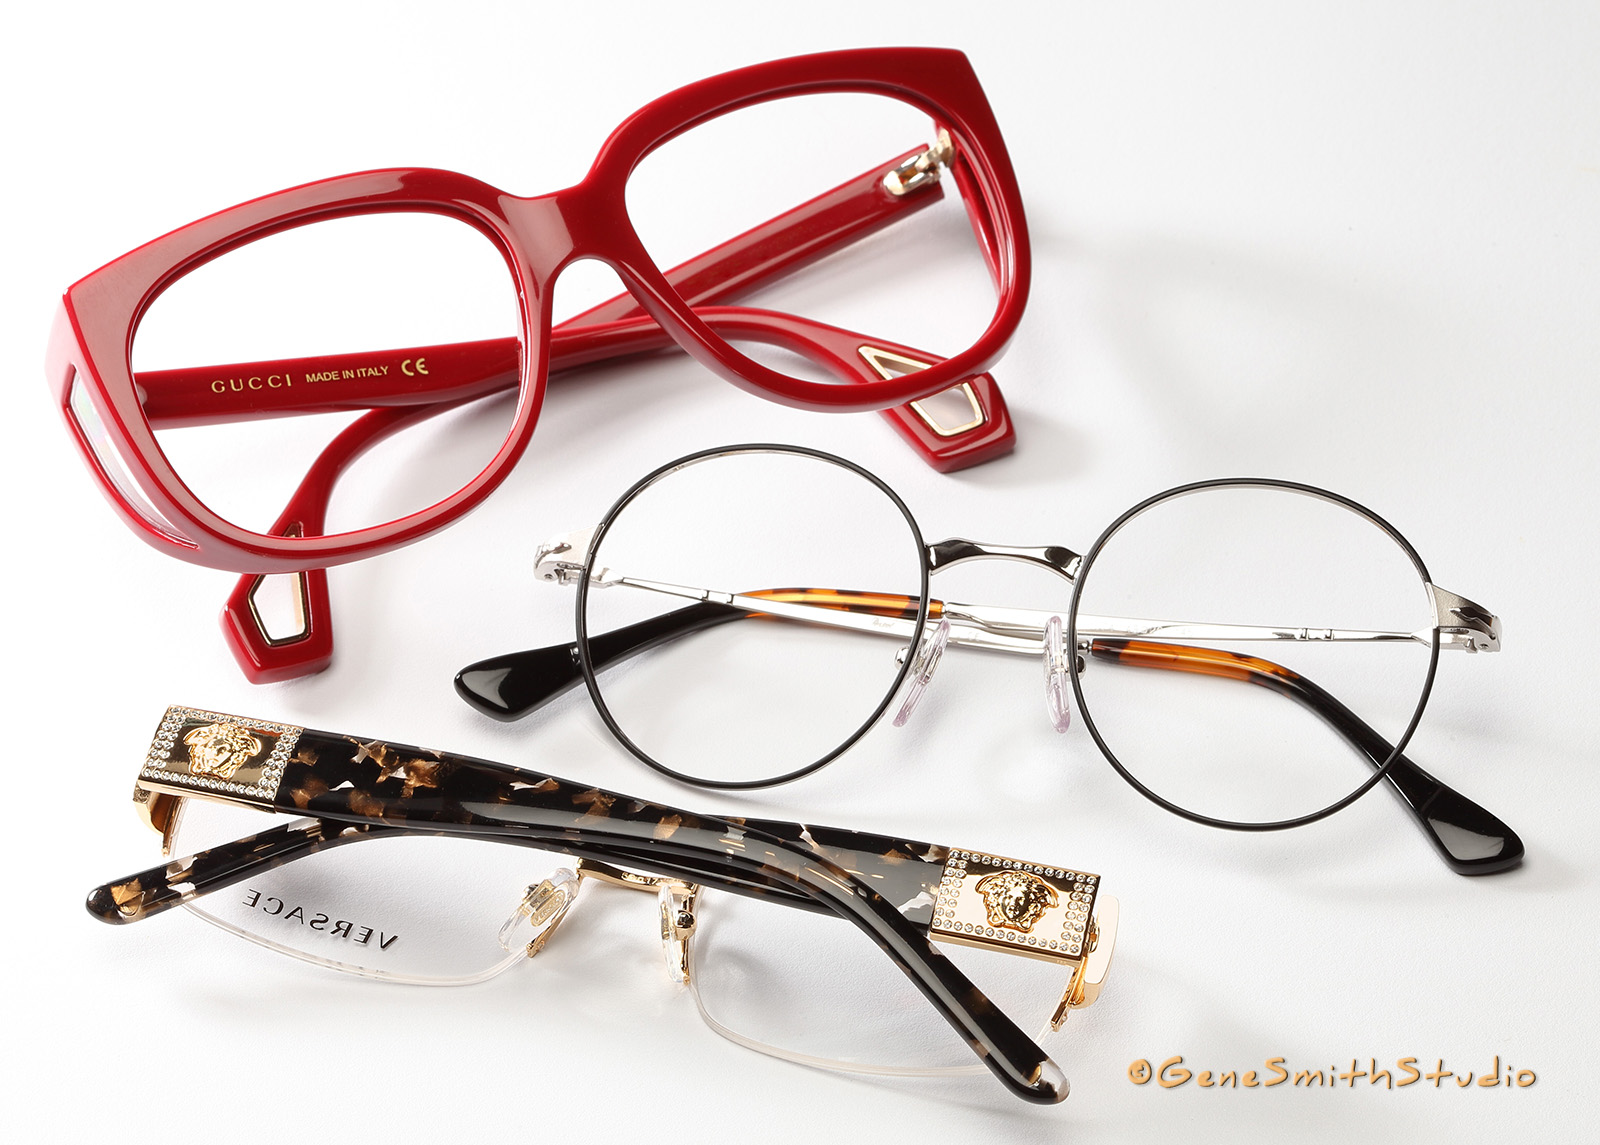 A professional photo for advertising by Gene Smith Studio, Commercial and Headshot Photographer in Cherry Hill , NJ of red GUCCI eyeglasses with luxury gold VERSACE and upscale round lens eyeglass frames.